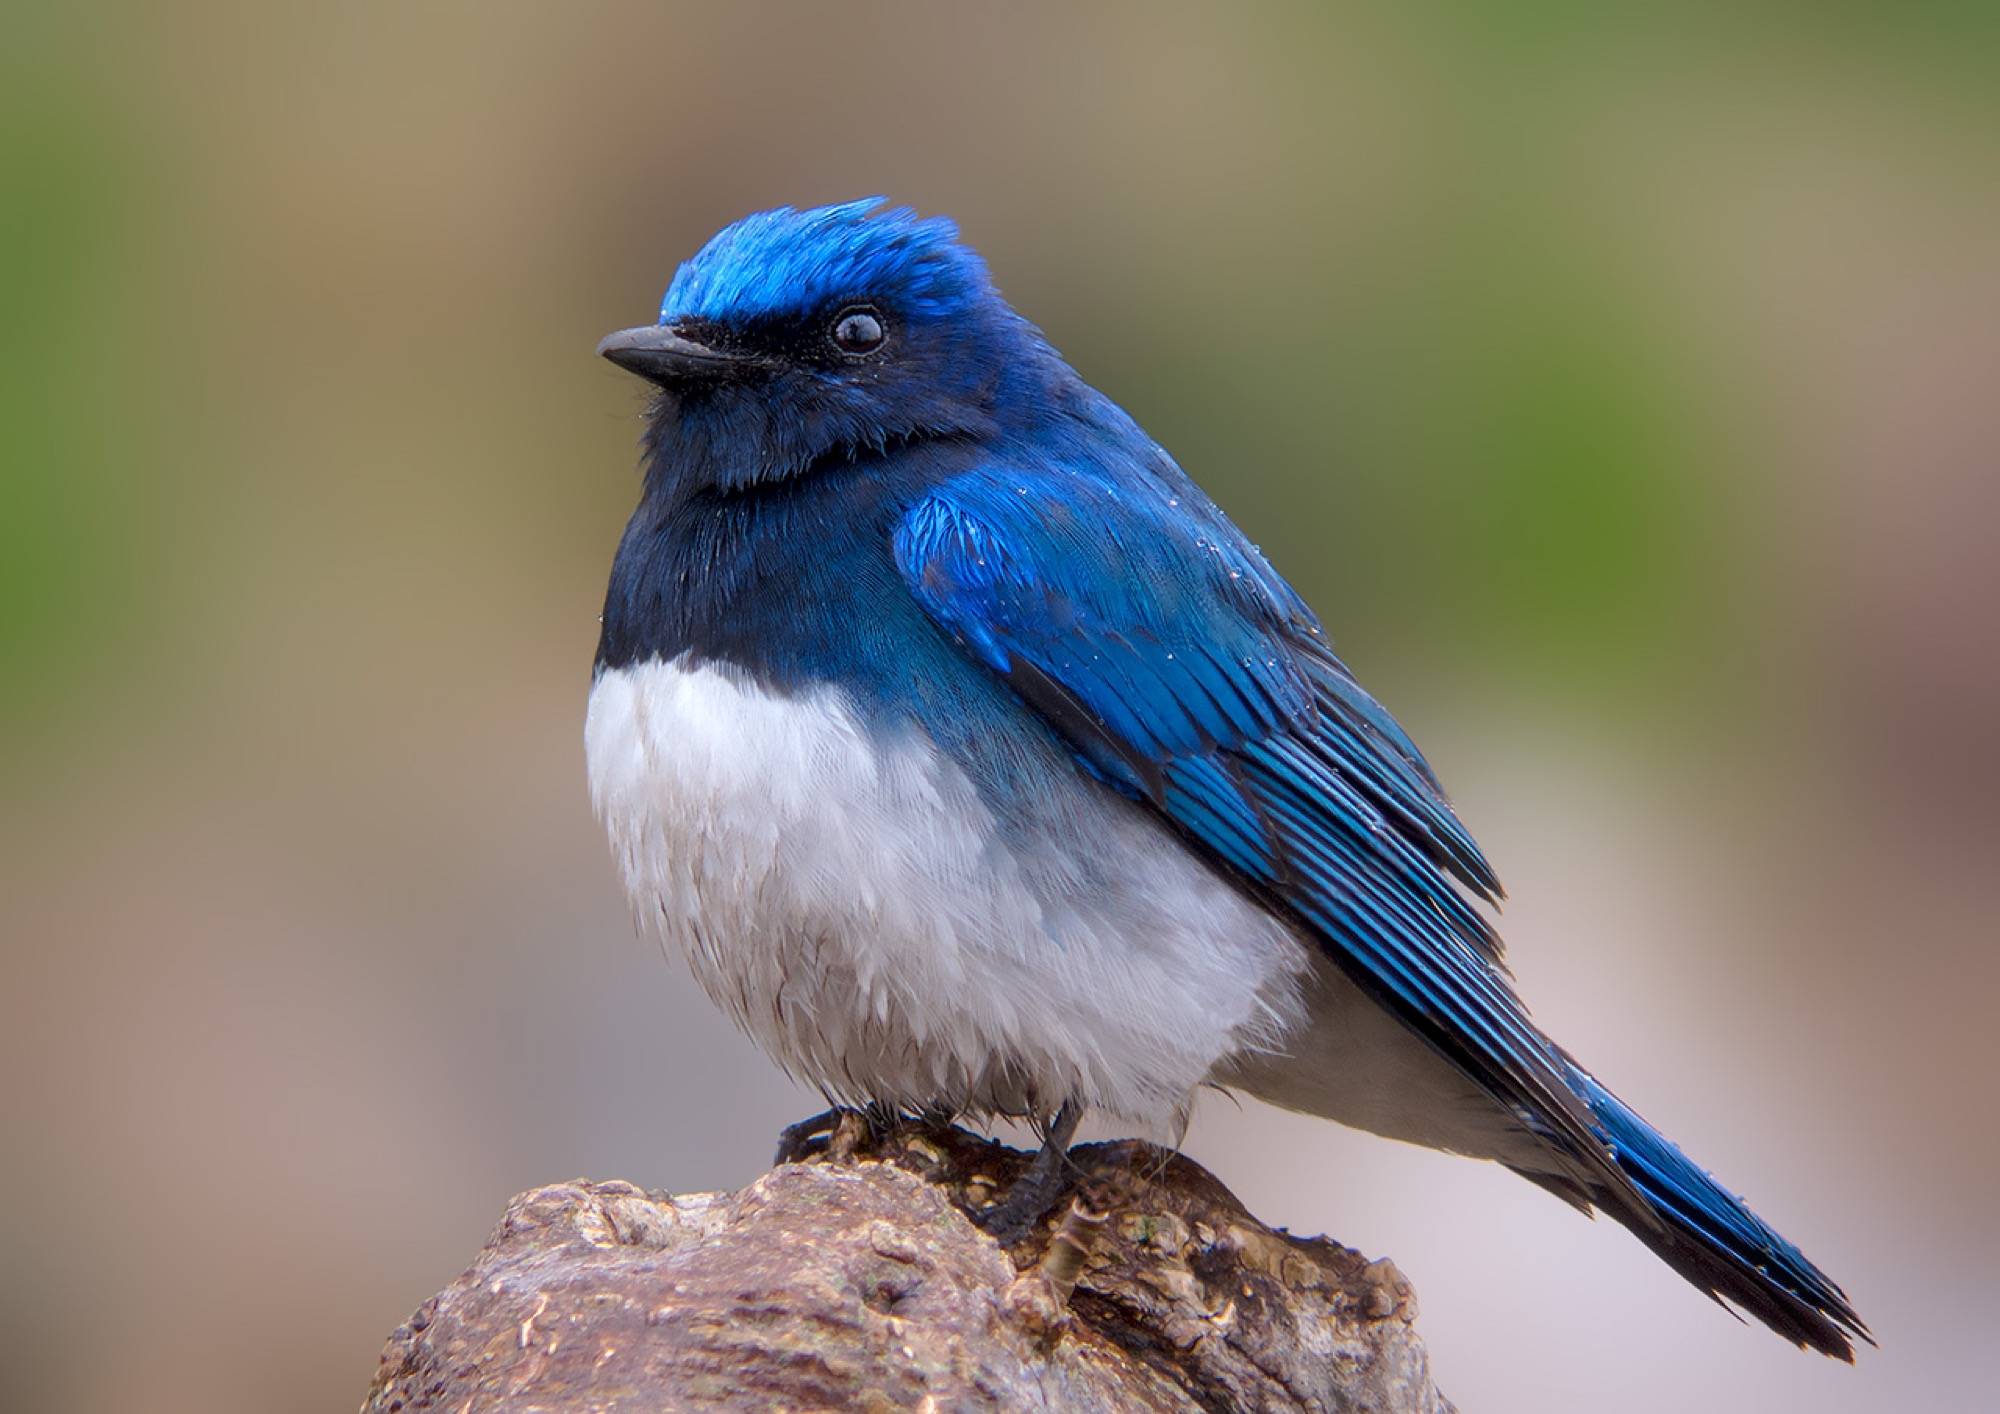 The Blue and White Flycatcher